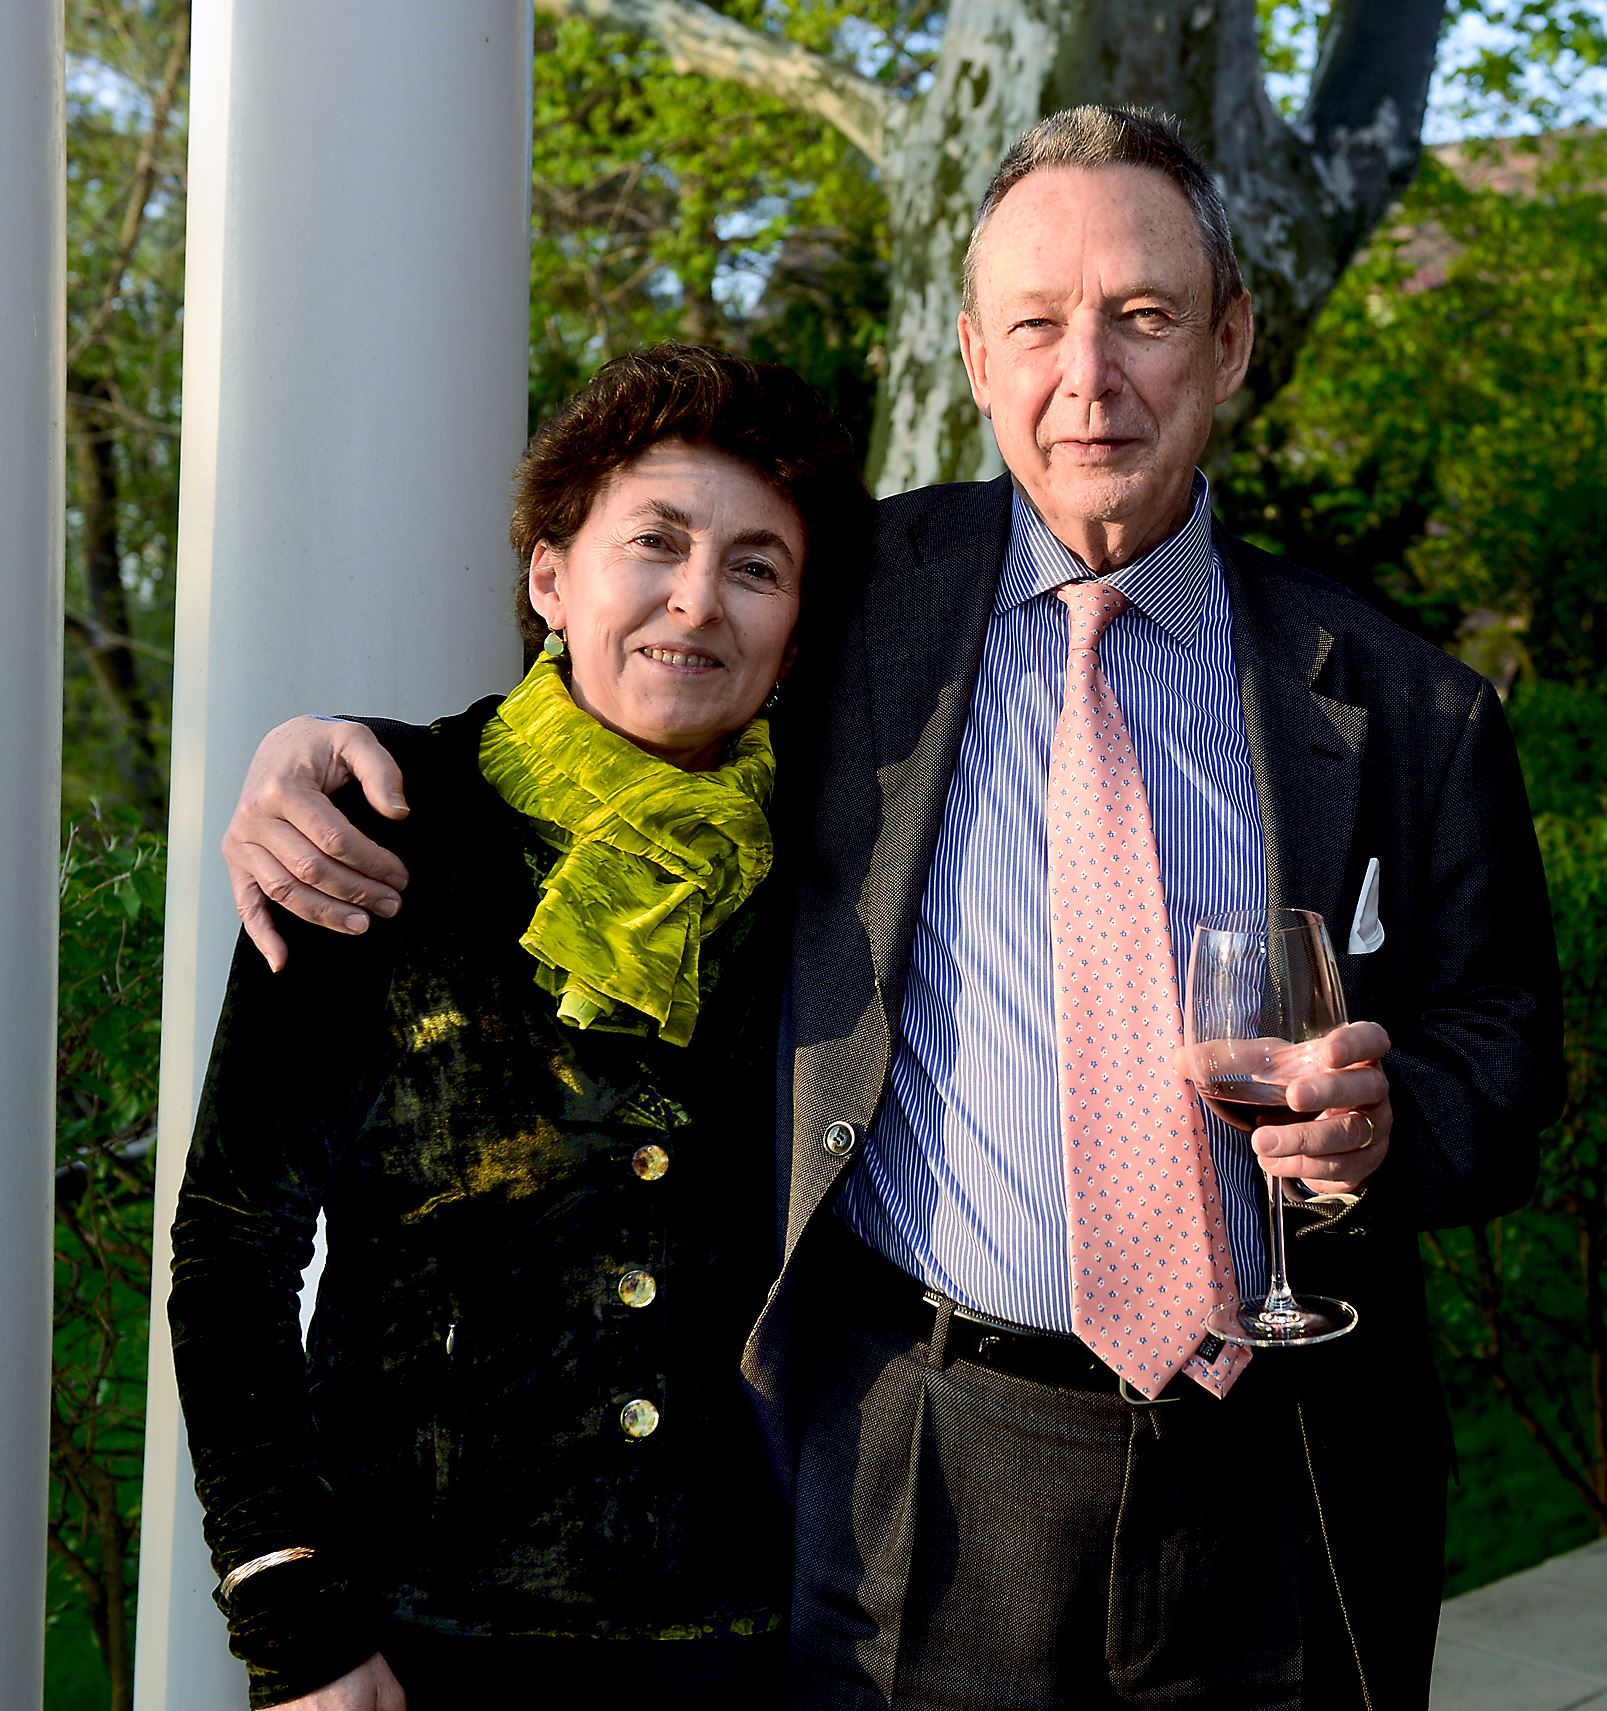 20150424bwPalmaMag04-3 Nicoletta and Gioacchino, the Duchess and Duke of Palma, Sicily, at a reception at the home of Jerome and Patricia Pesenti in Squirrel Hill.